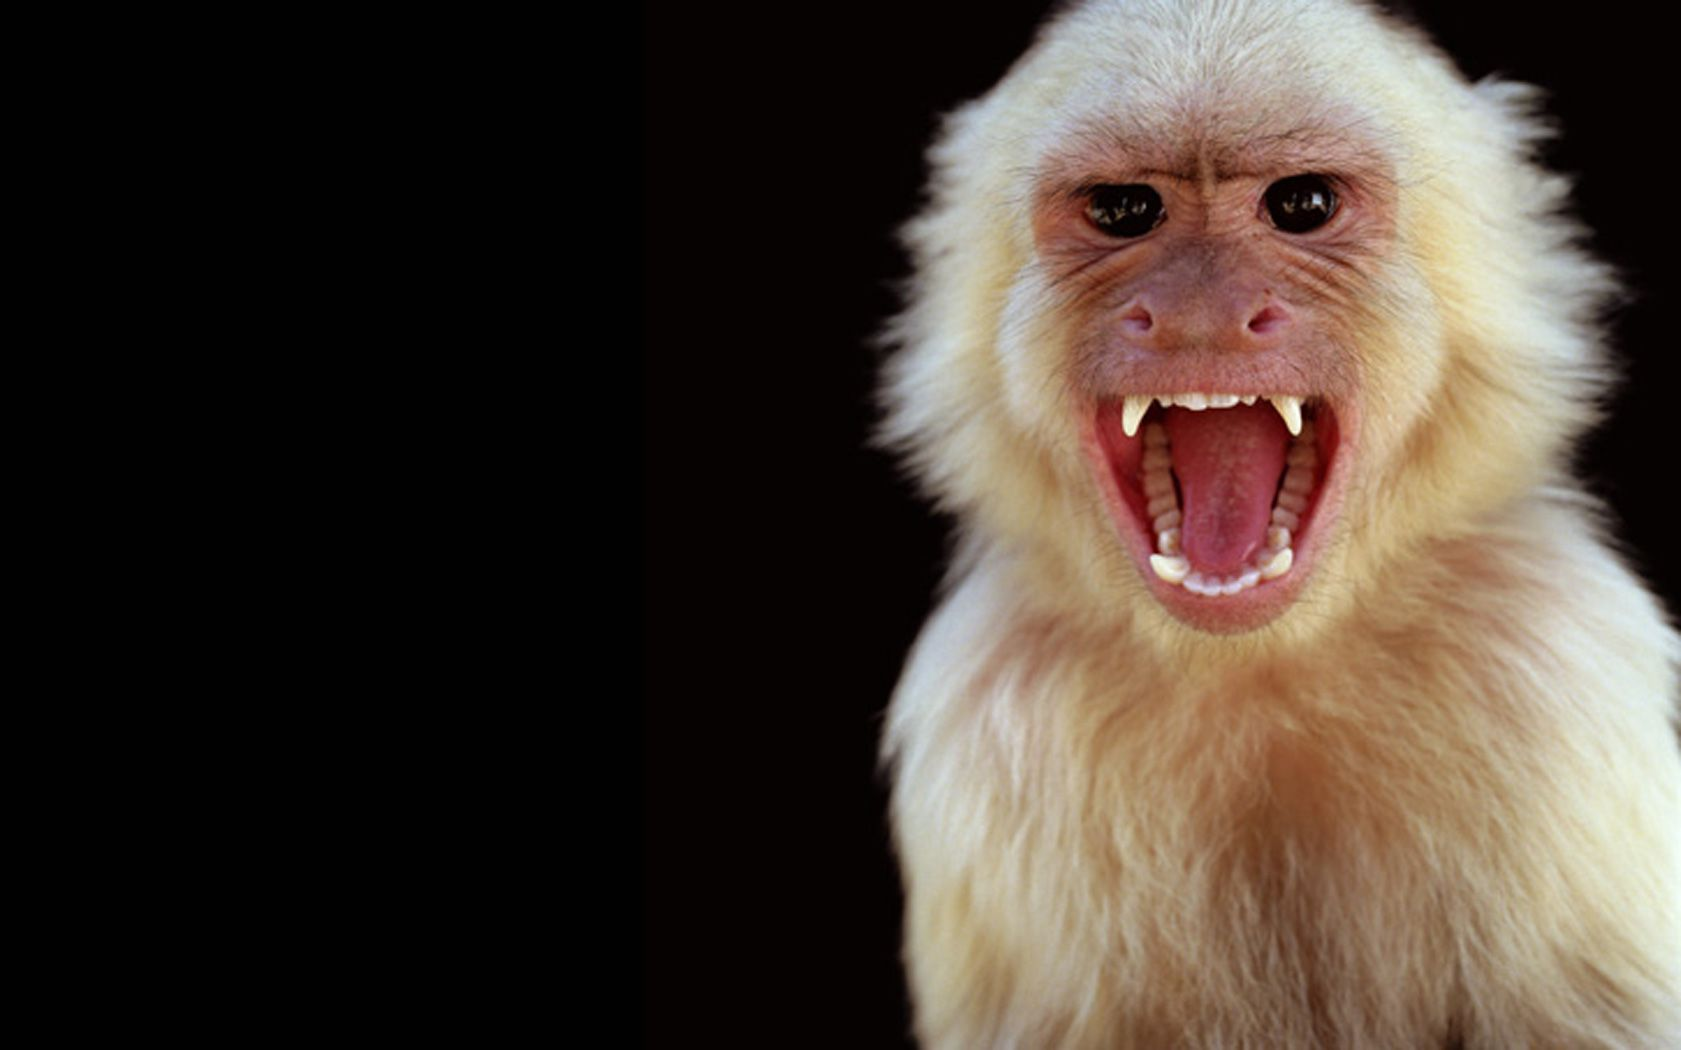 Capuchin monkeys are territorial animals